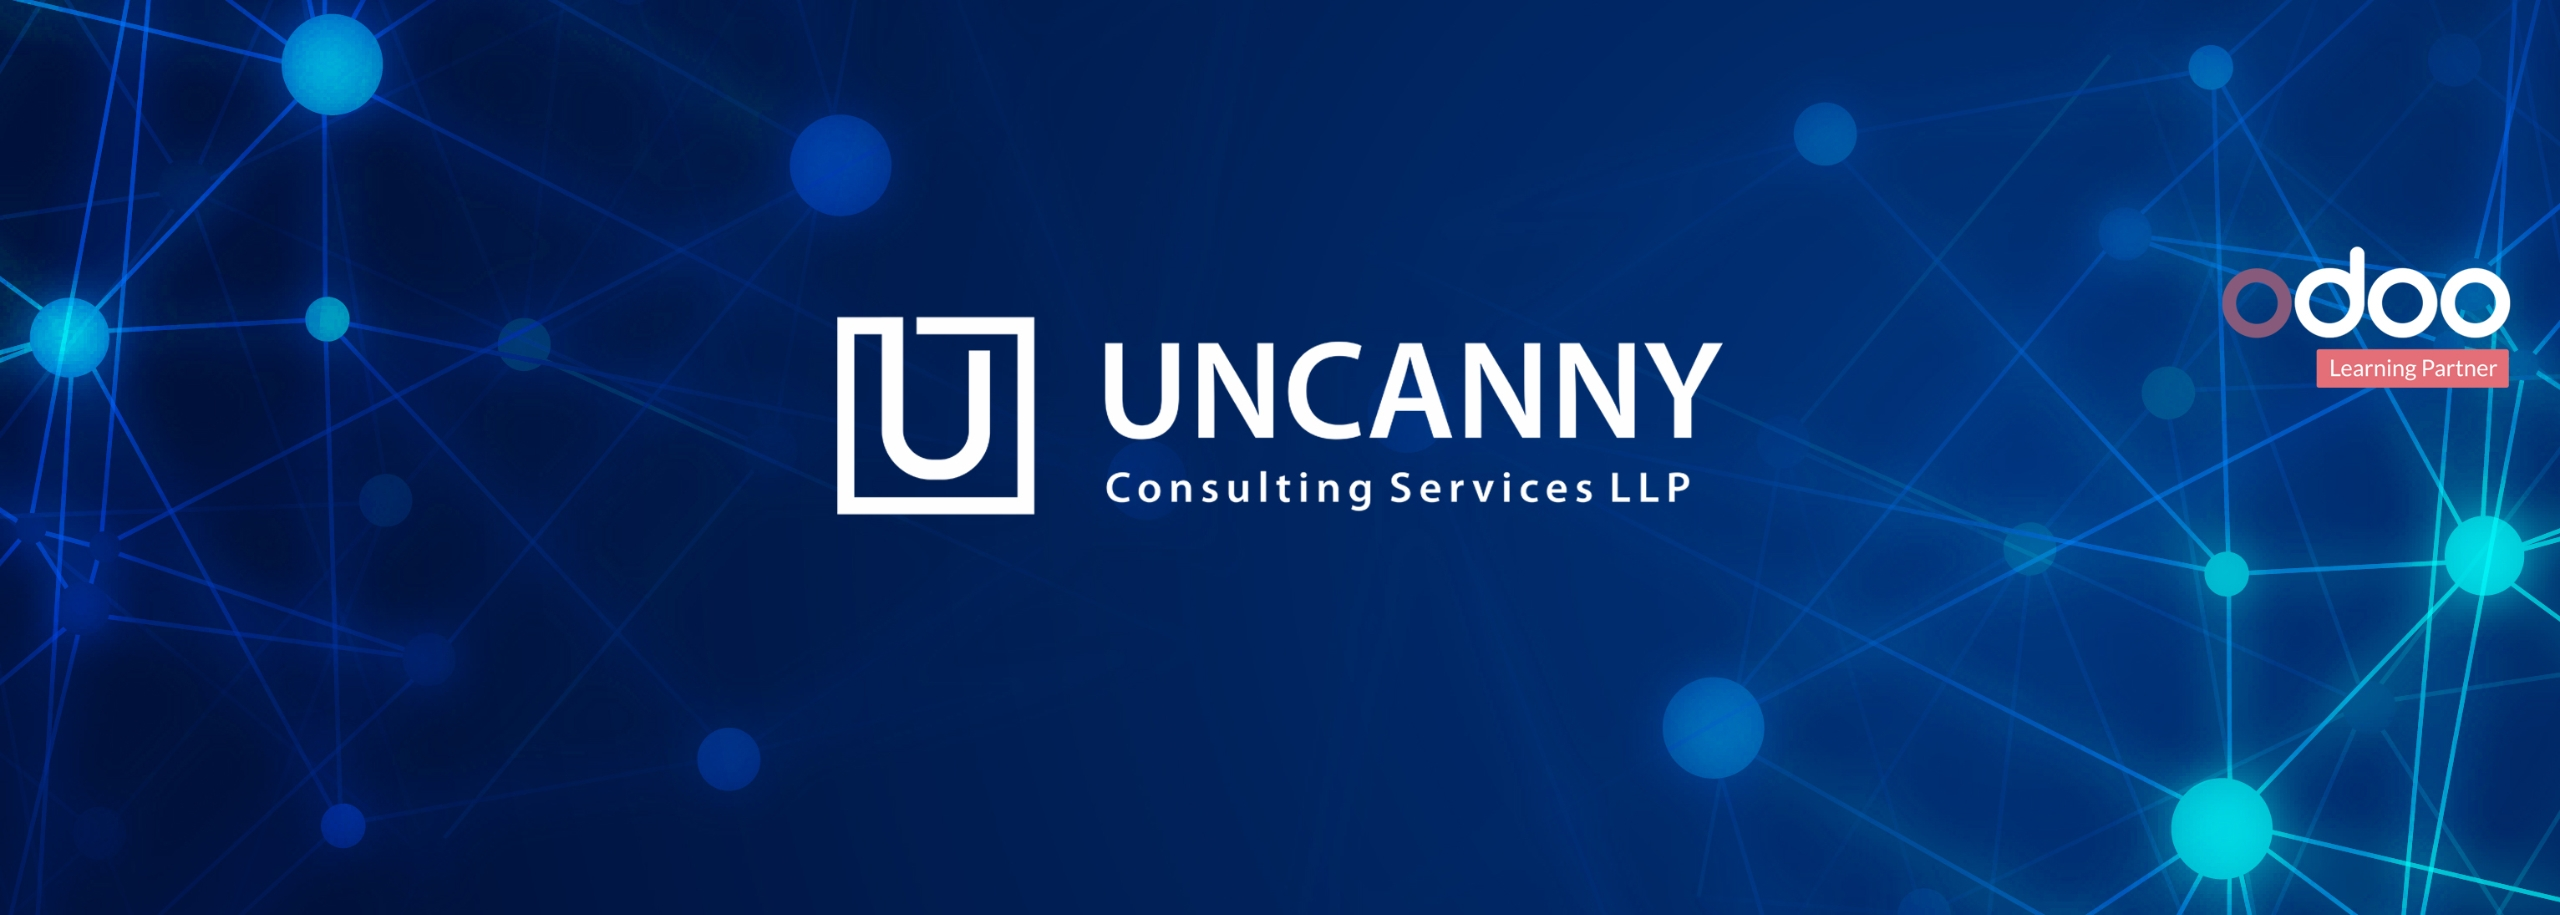 Uncanny Consulting Services (@uncannyconsultingservices) Cover Image